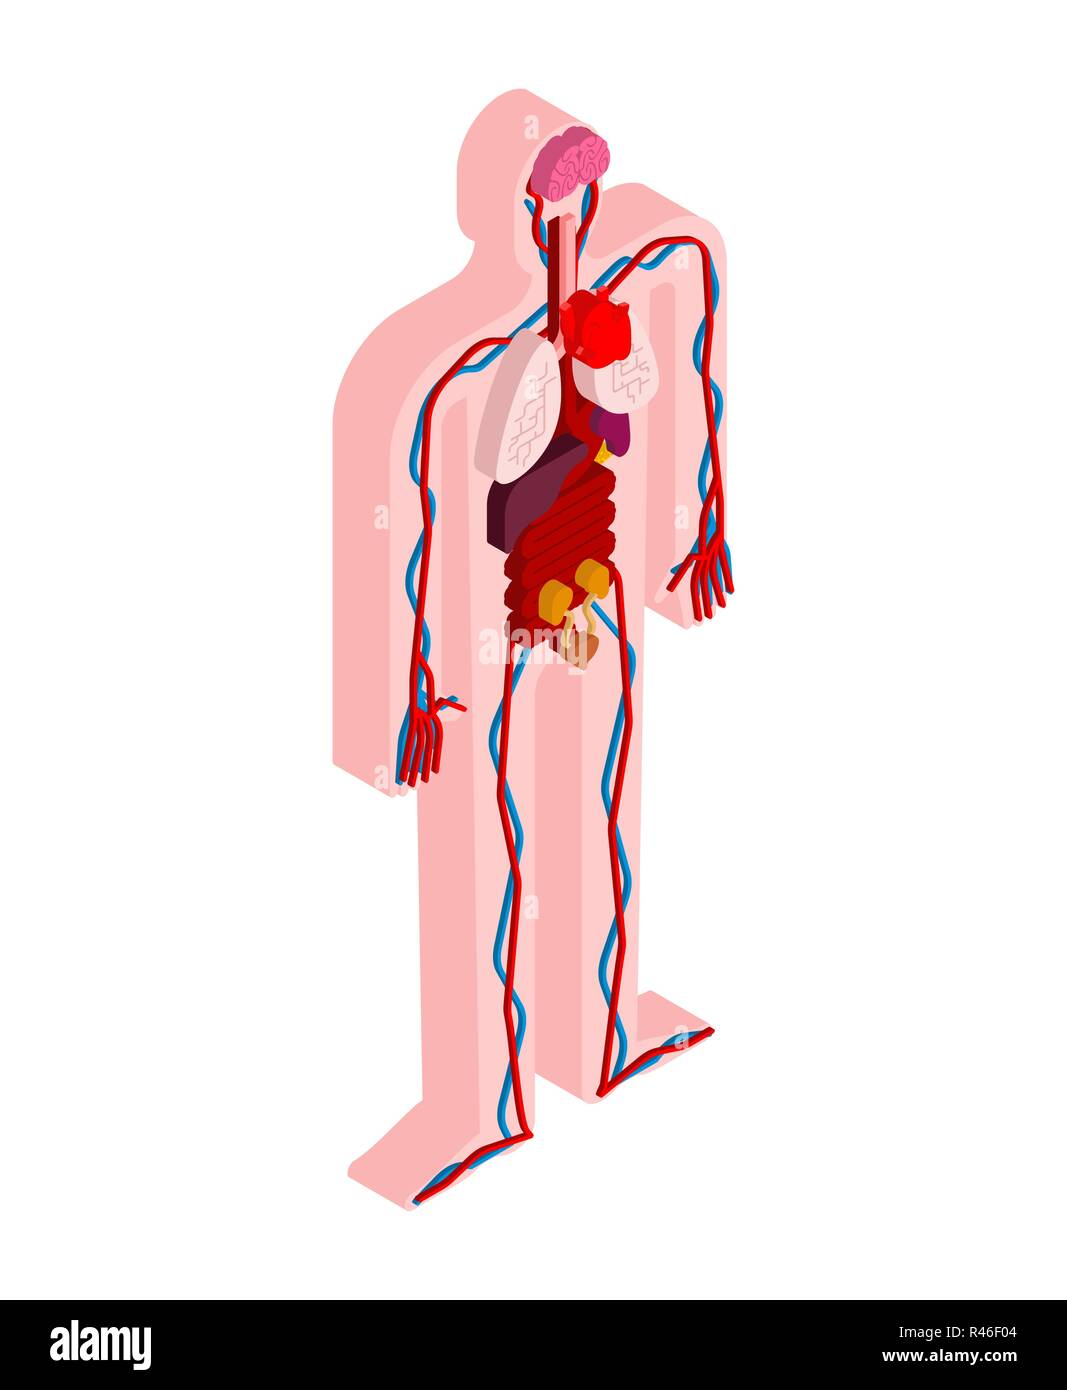 Human Anatomy Body Isometric Internal Organs 3d Organ Systems Of